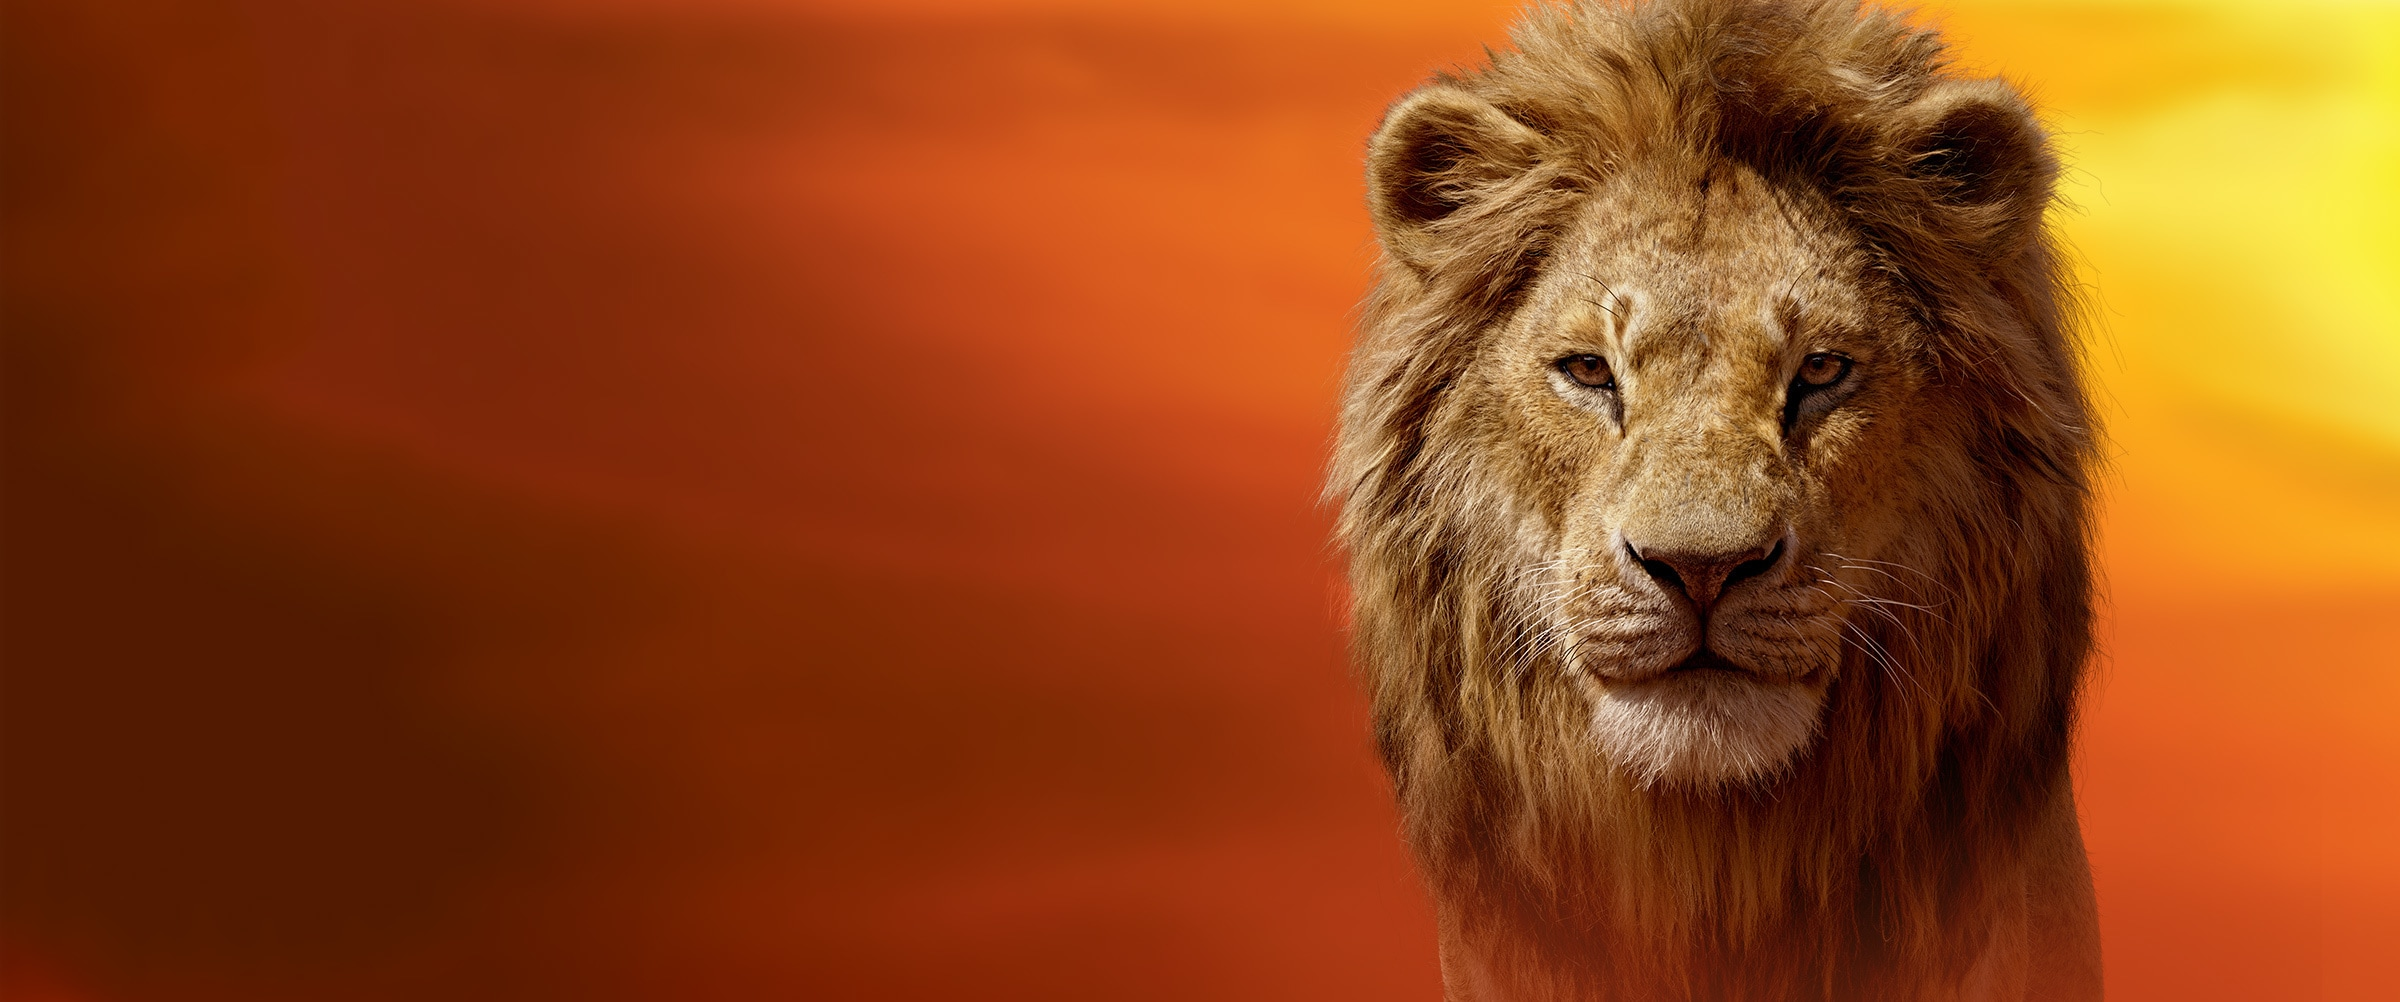 EMEA Banner - Disney's The Lion King (2019) - Protect The Pride Hero - Mufasa Red Sky